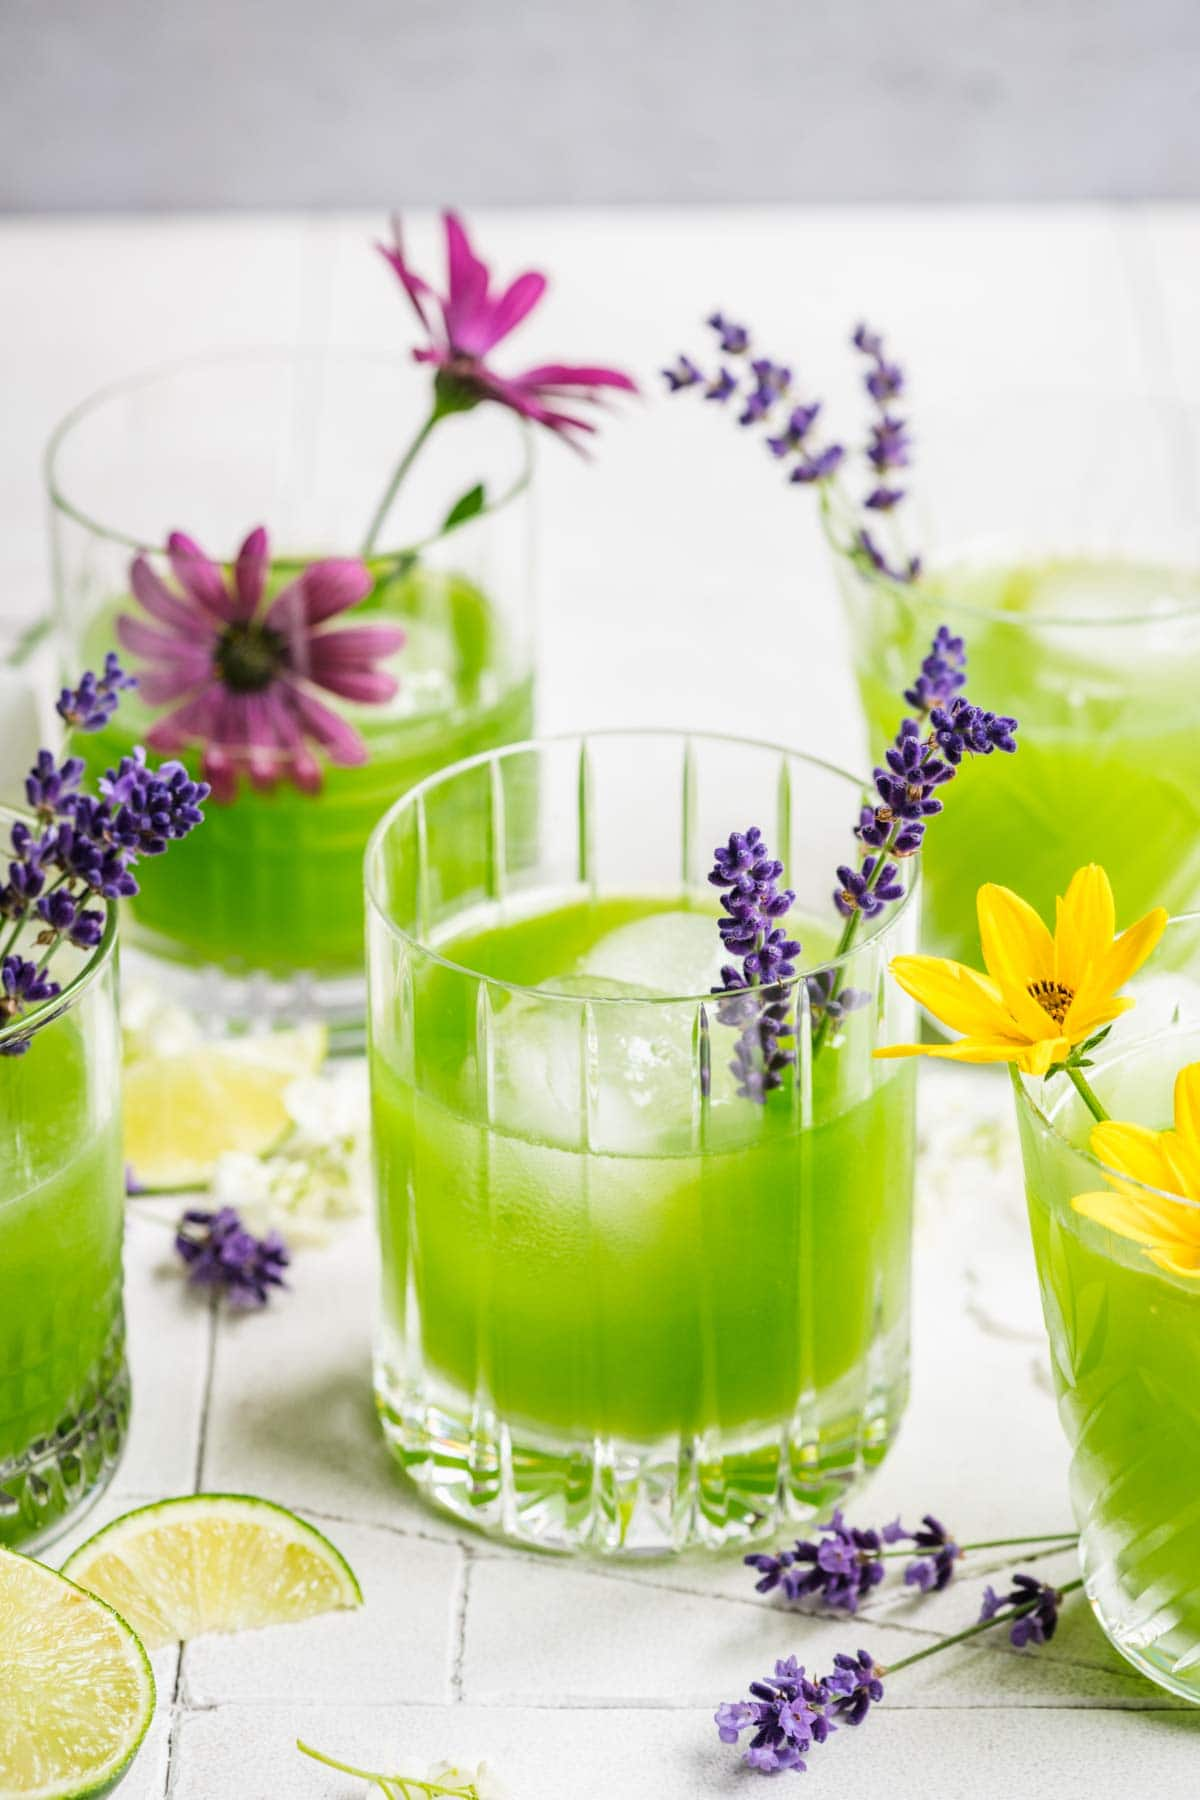 Cucumber gin cocktail in a glass with ice, garnished with a sprig of lavender.